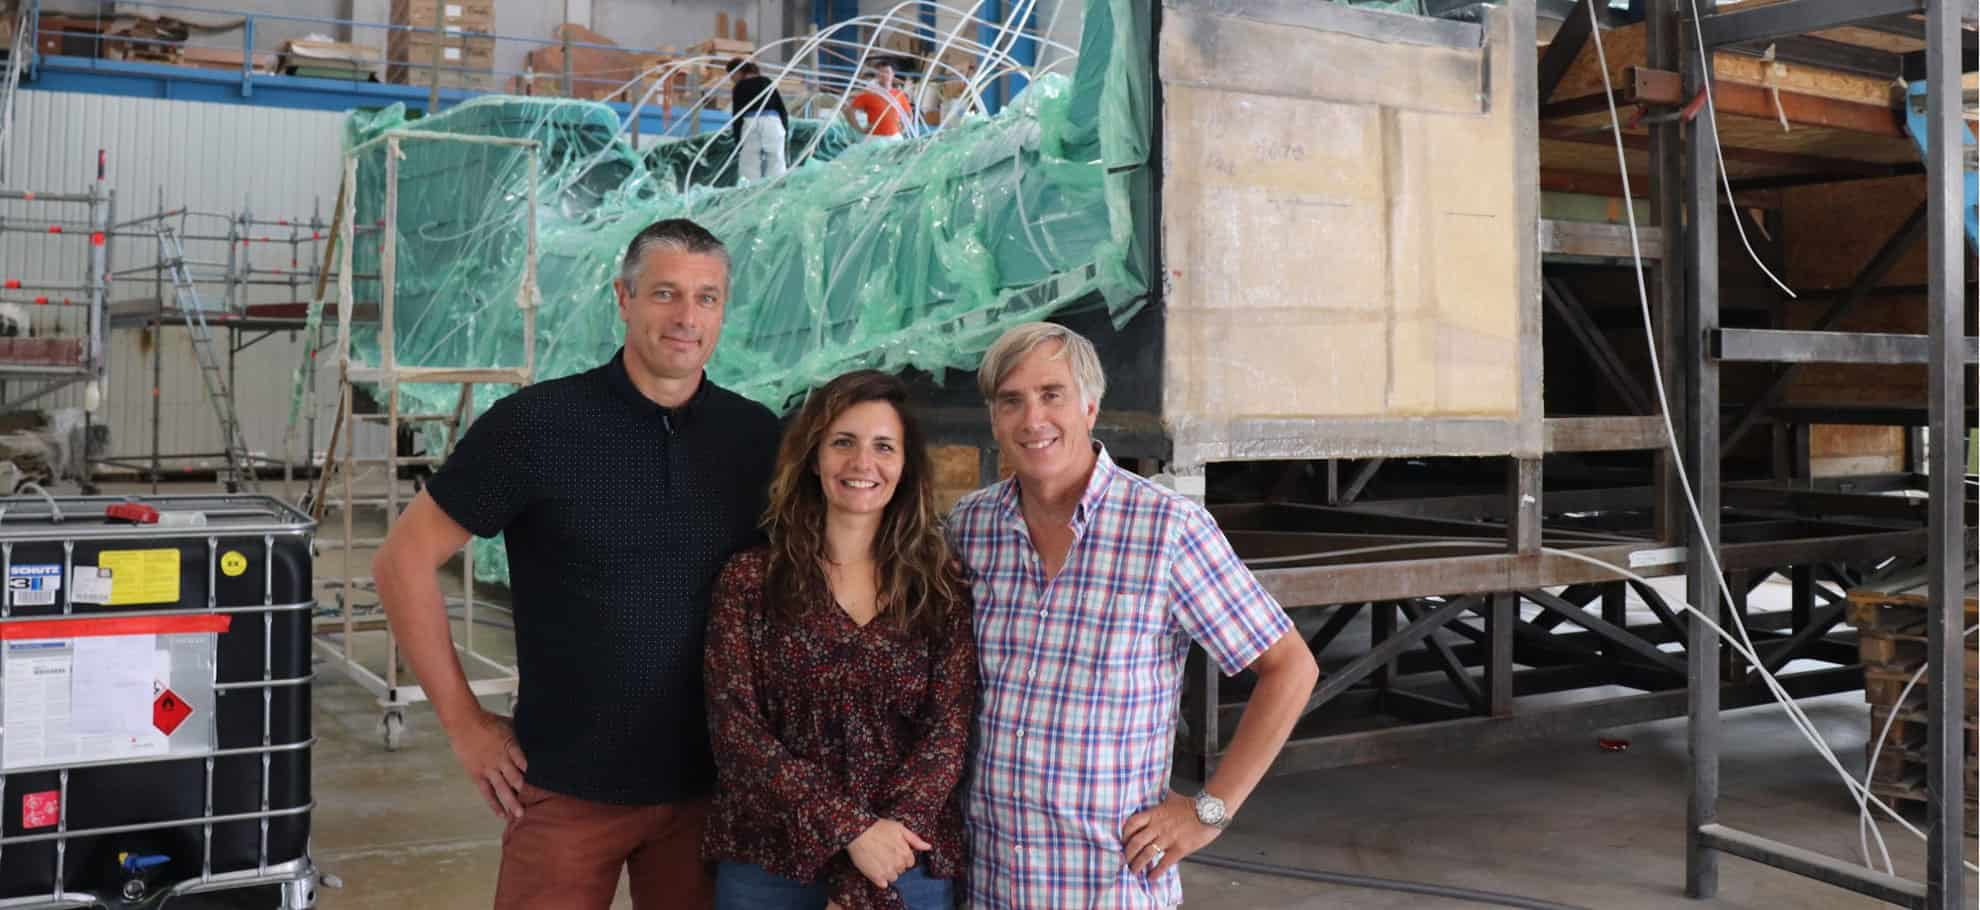 Rob with Production Manager Freddy and Caroline from Customer Services at the Privilege boatyard